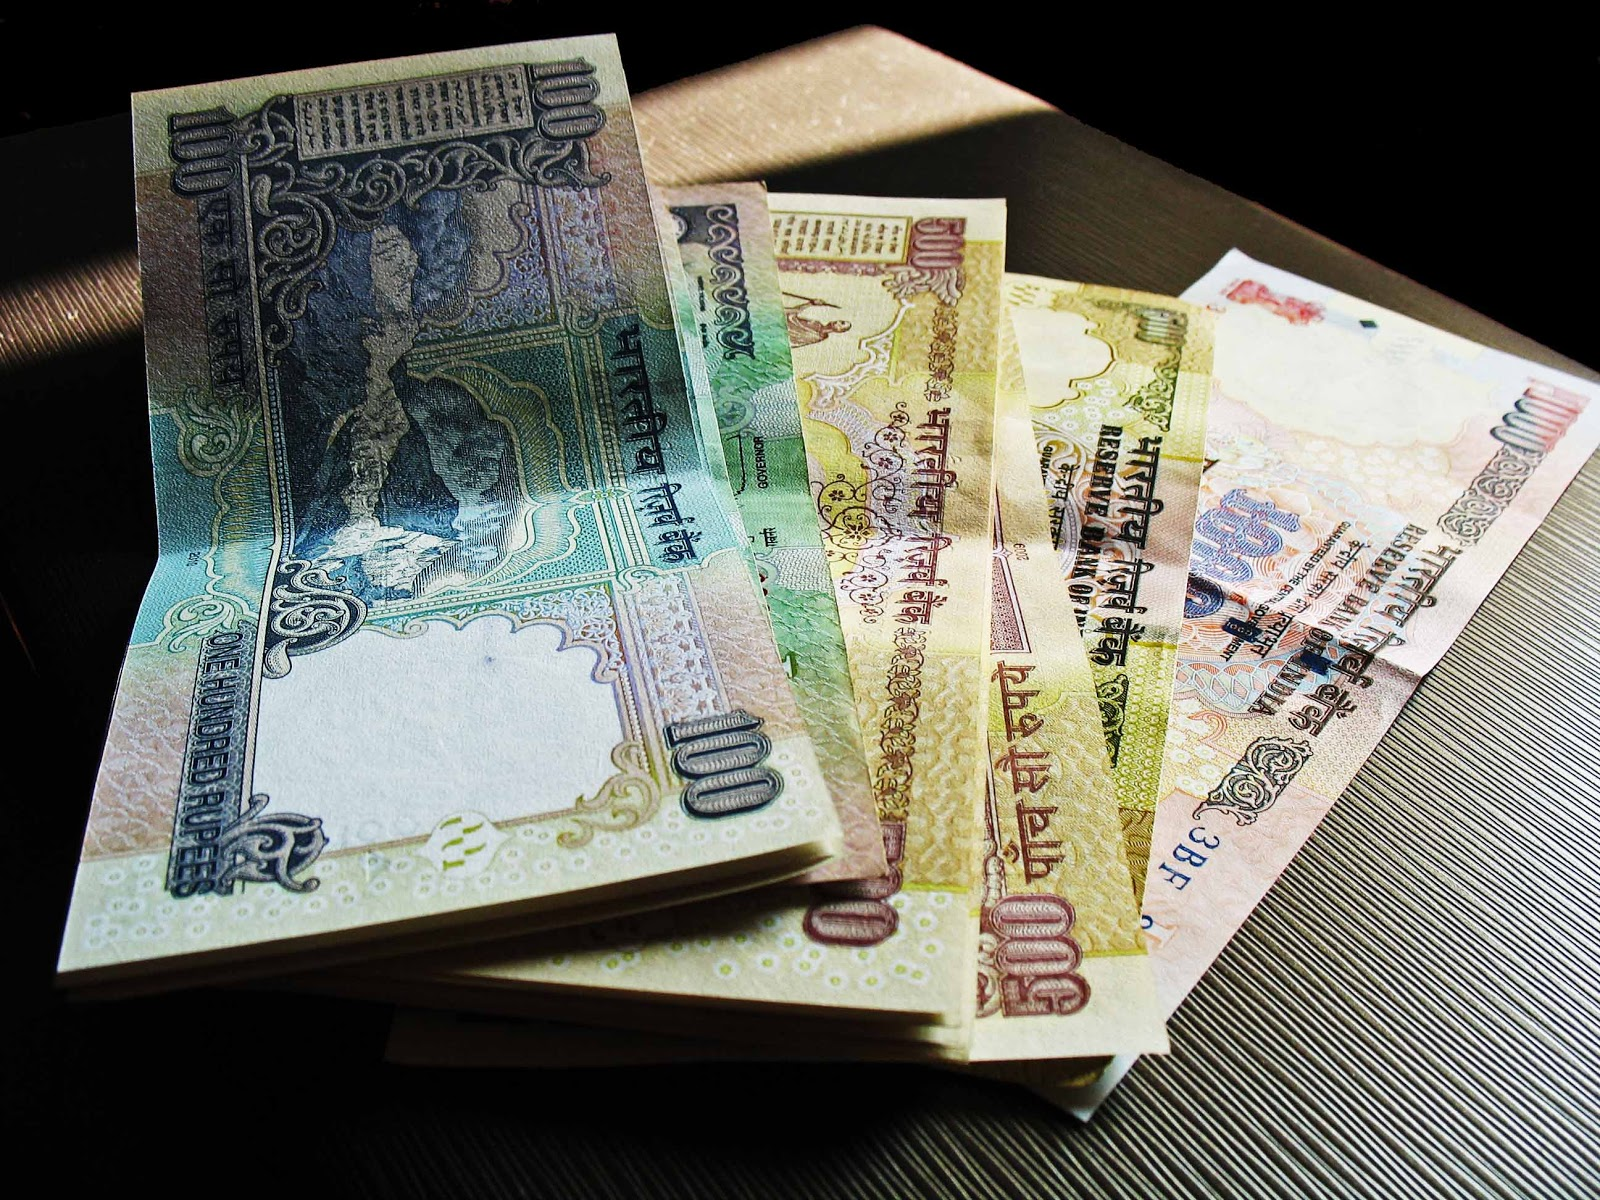 Rupee Note Image Rupee Notes Laptop Background